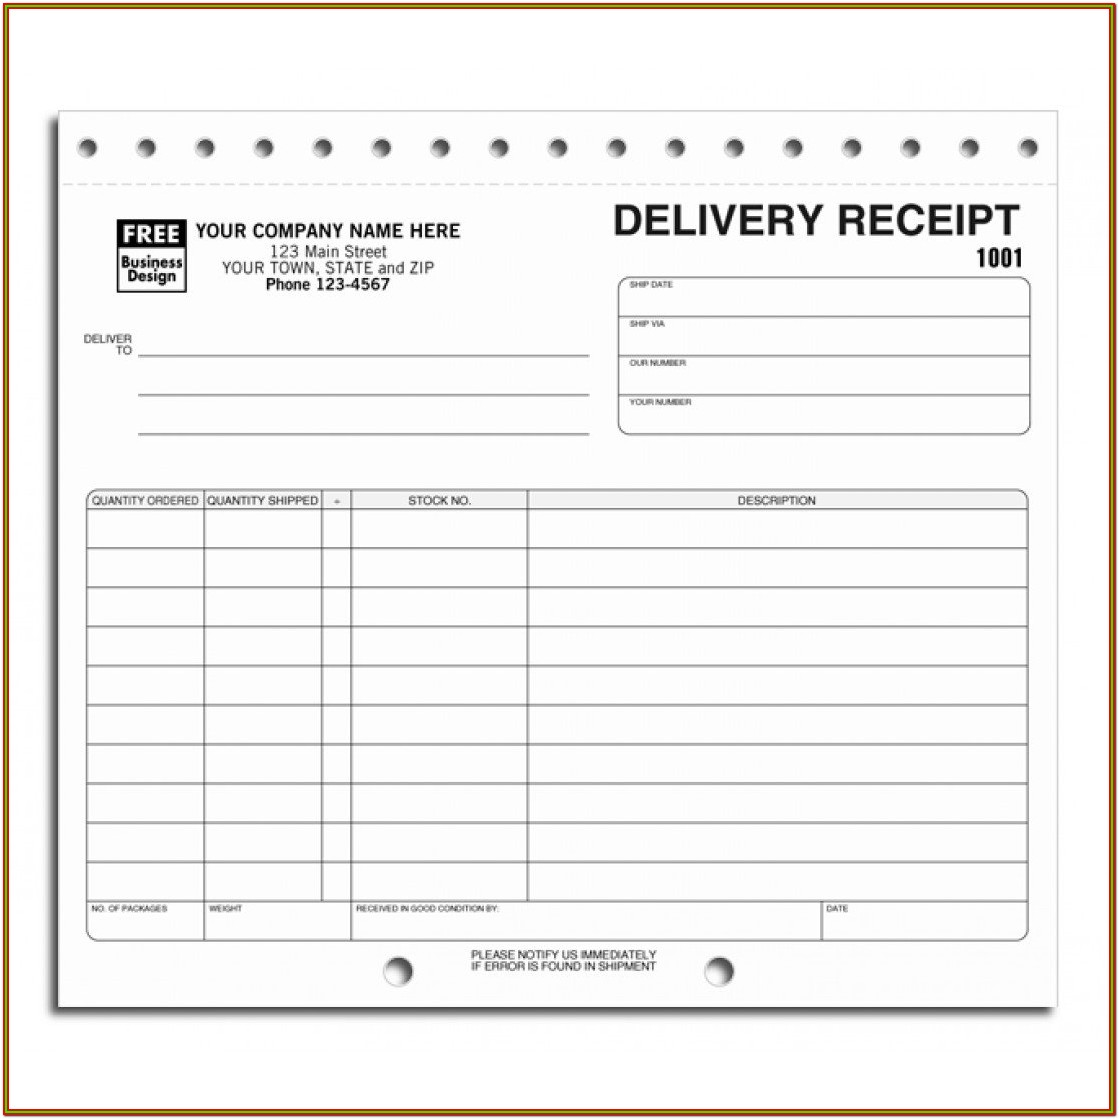 Printable Delivery Receipt Forms